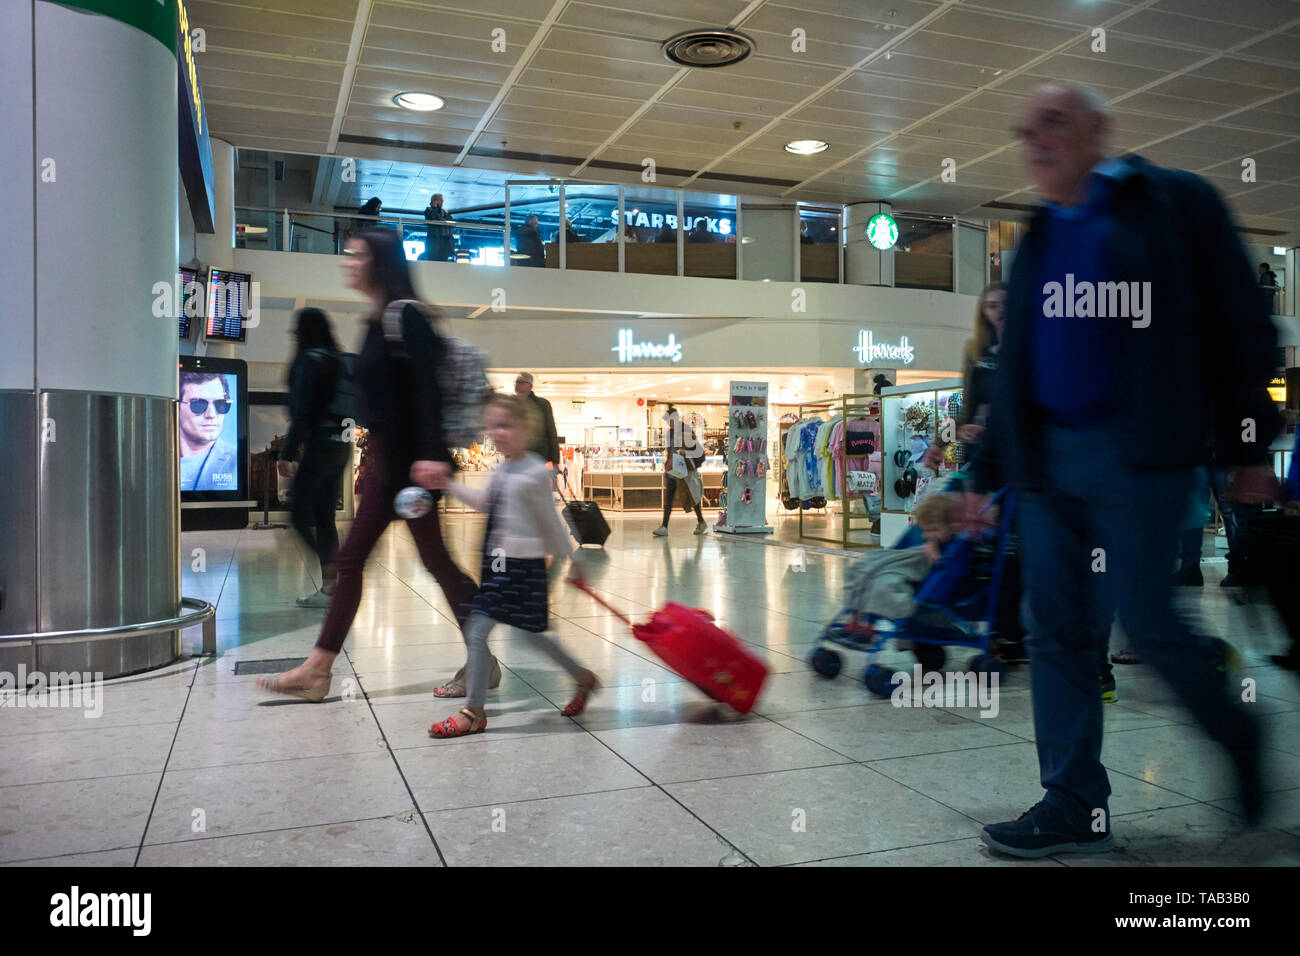 Harrods shop in the north terminal of Gatwick airport - Stock Image